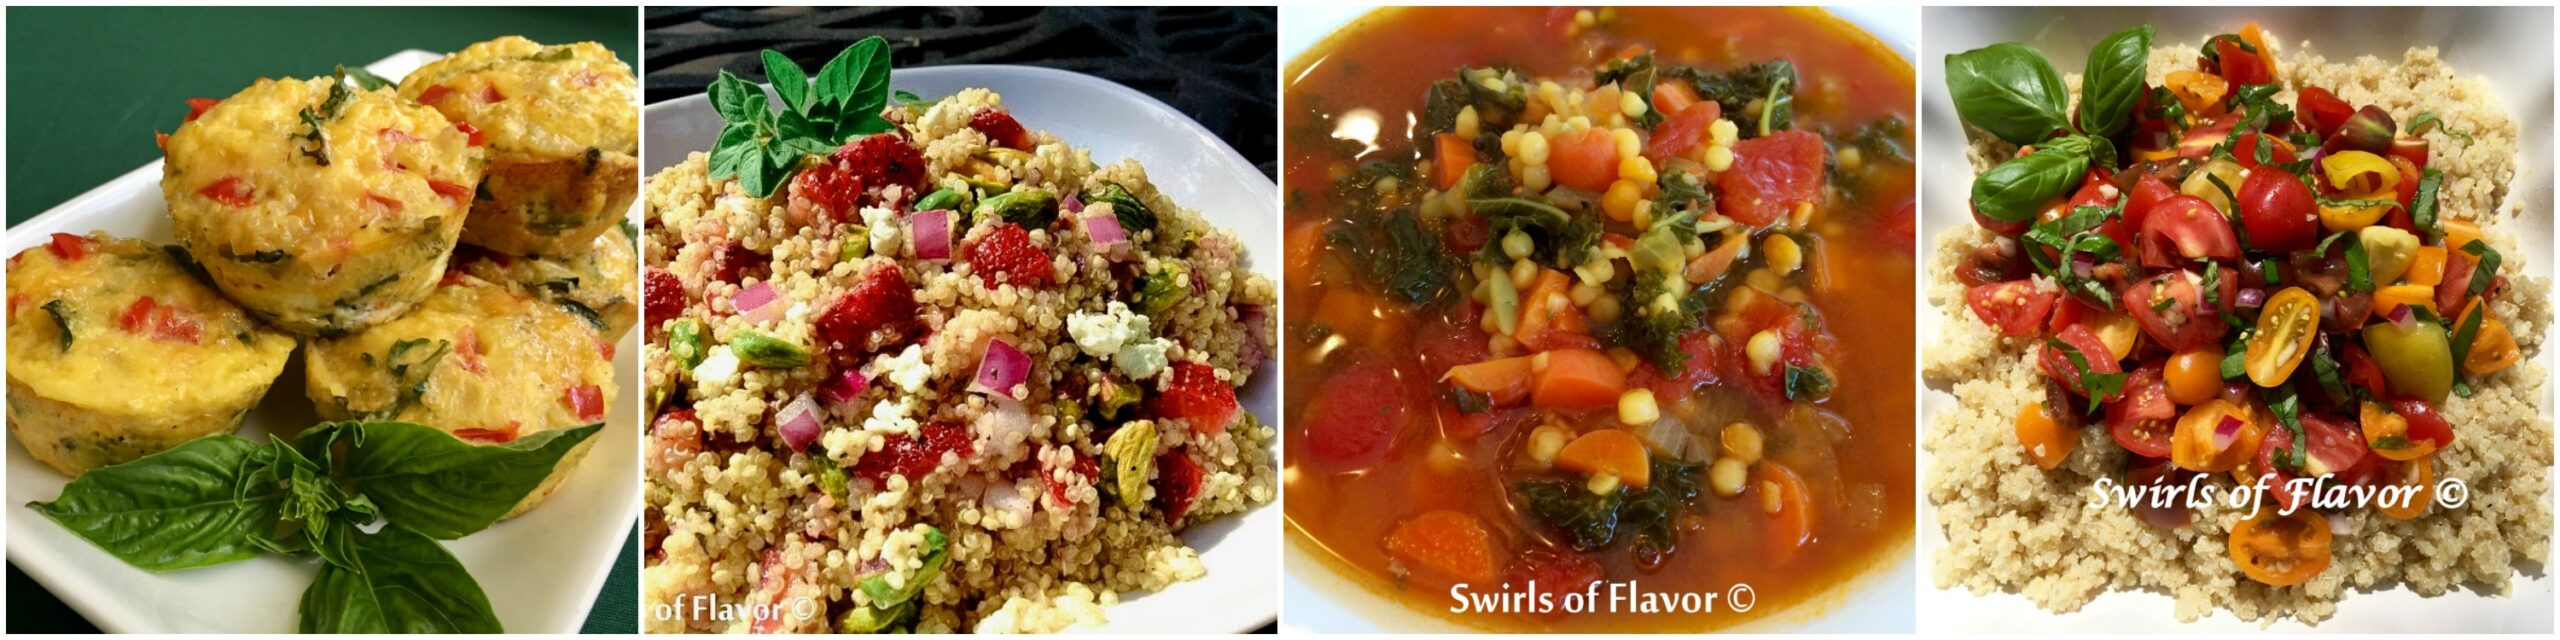 Left to Right: Quinoa Egg Muffins; Strawberry Quinoa; Quinoa Lentil Bowl; Tomato Quinoa